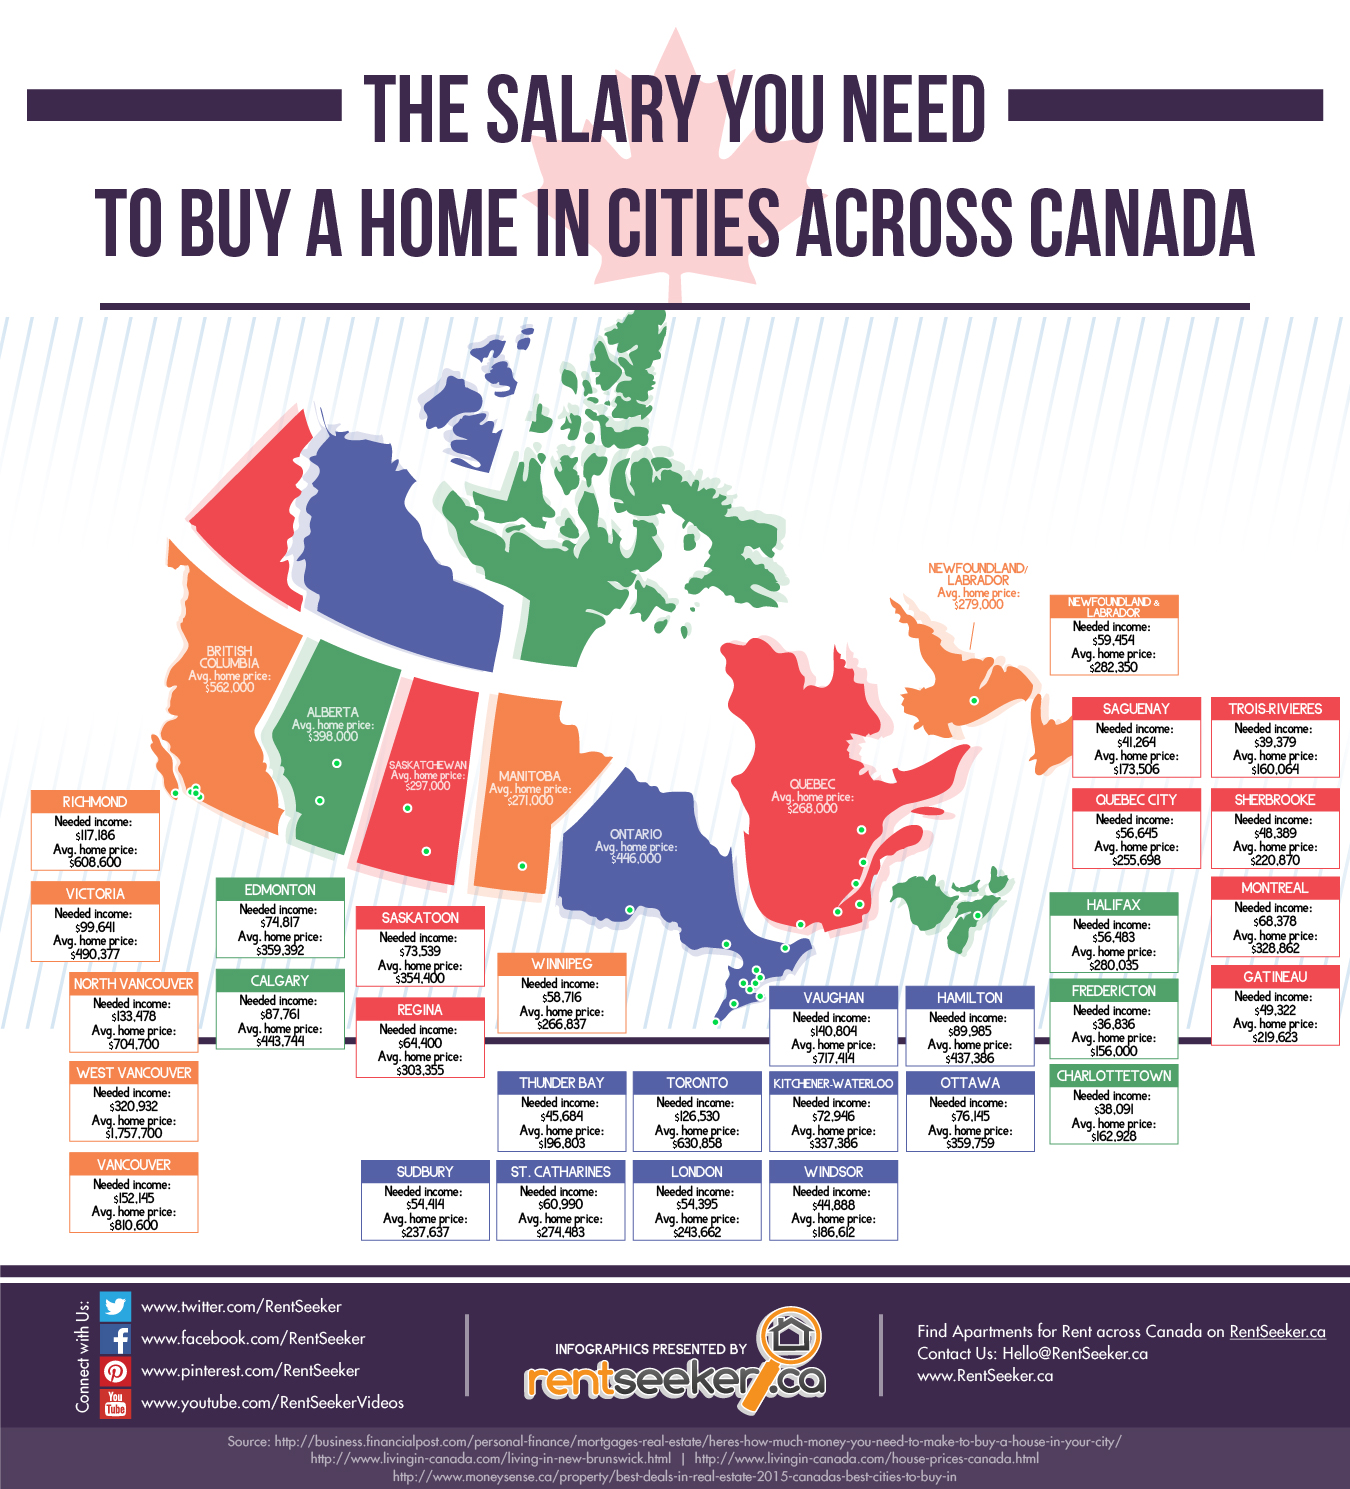 How Much Do You Need to Buy a Home in Canada